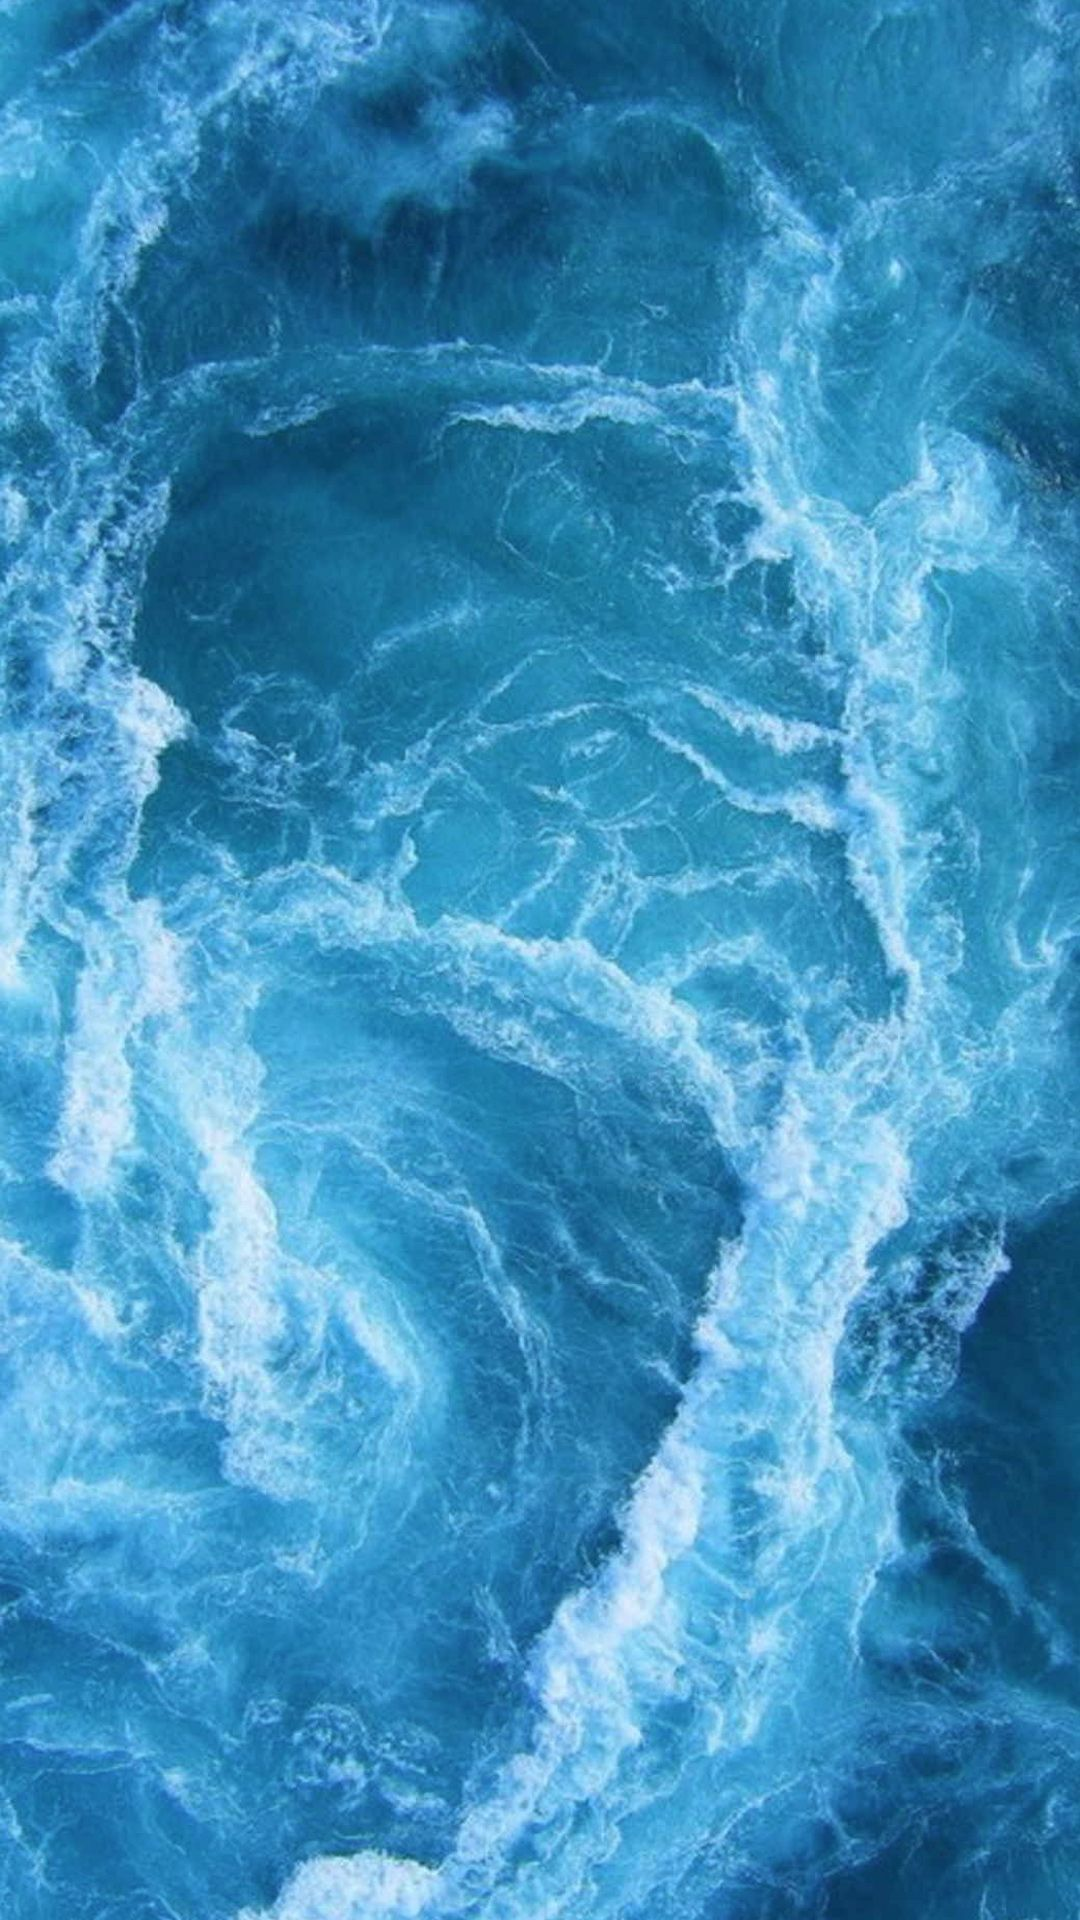 Swirling Blue Ocean Waves Iphone 8 Wallpapers Waves Wallpaper